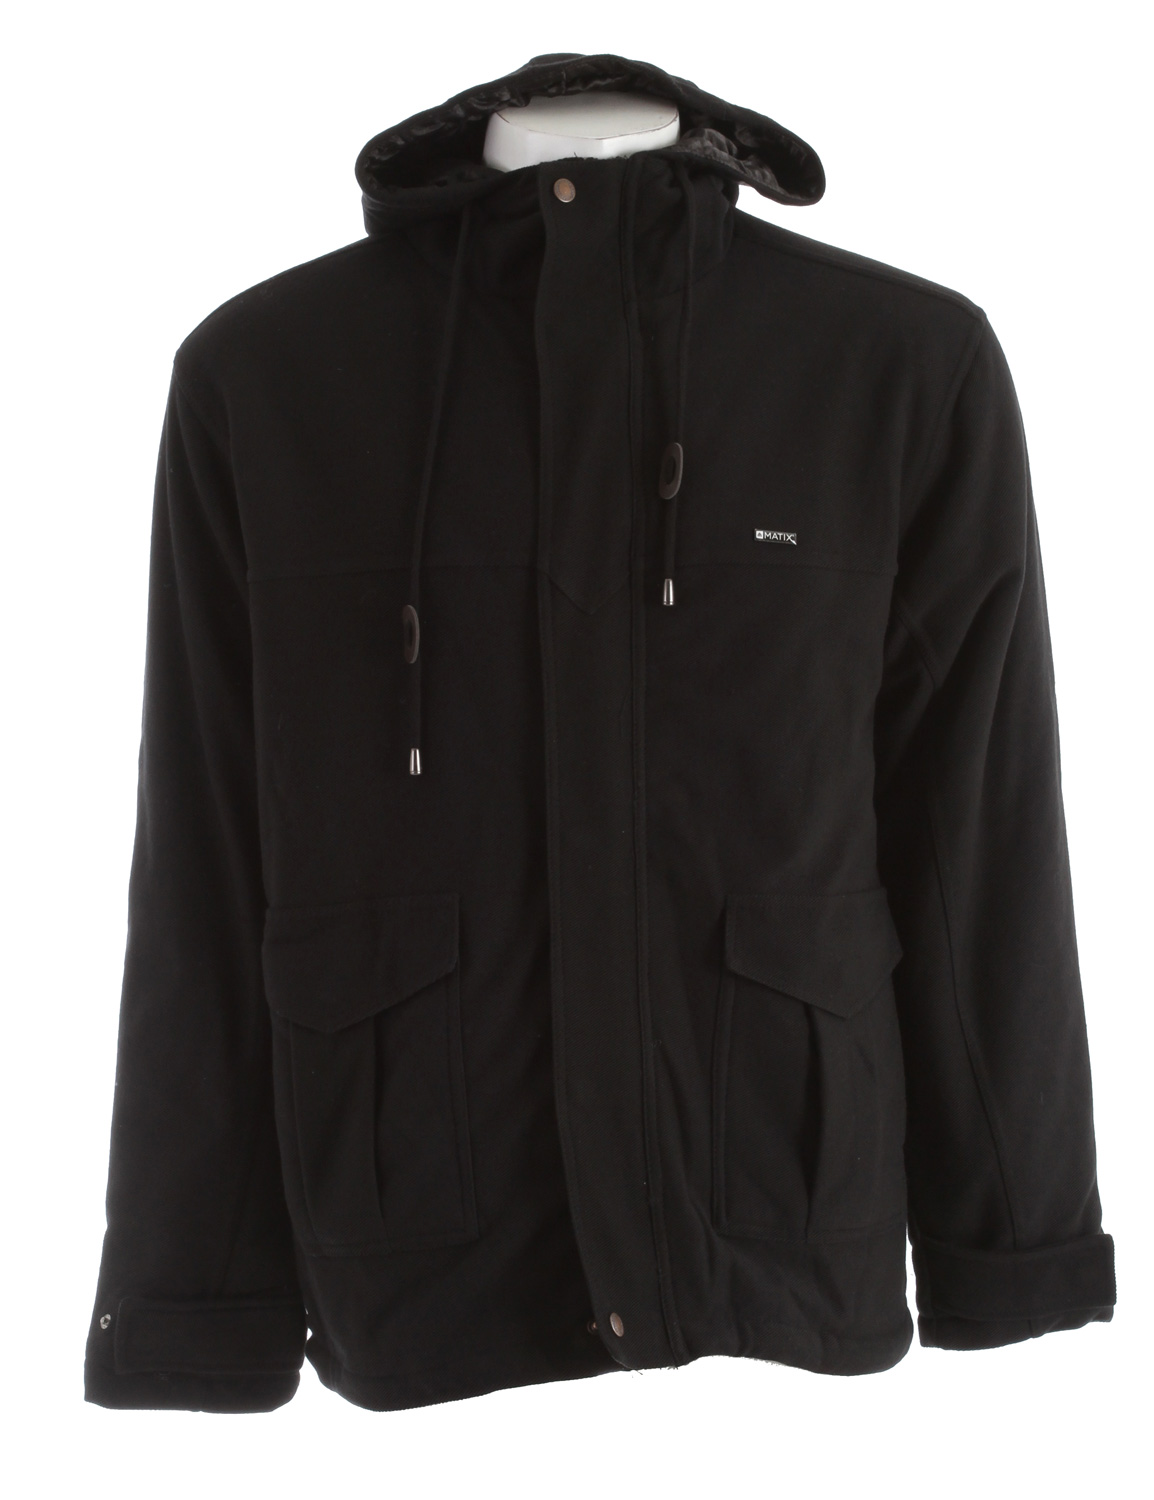 Key Features of the Matix Mueller Fleece Jacket: Zip front with snap button overlay Matix labeling Drawstring hood Front hand pockets Quilted nylon lining 60% cotton/40% polyester - $54.95